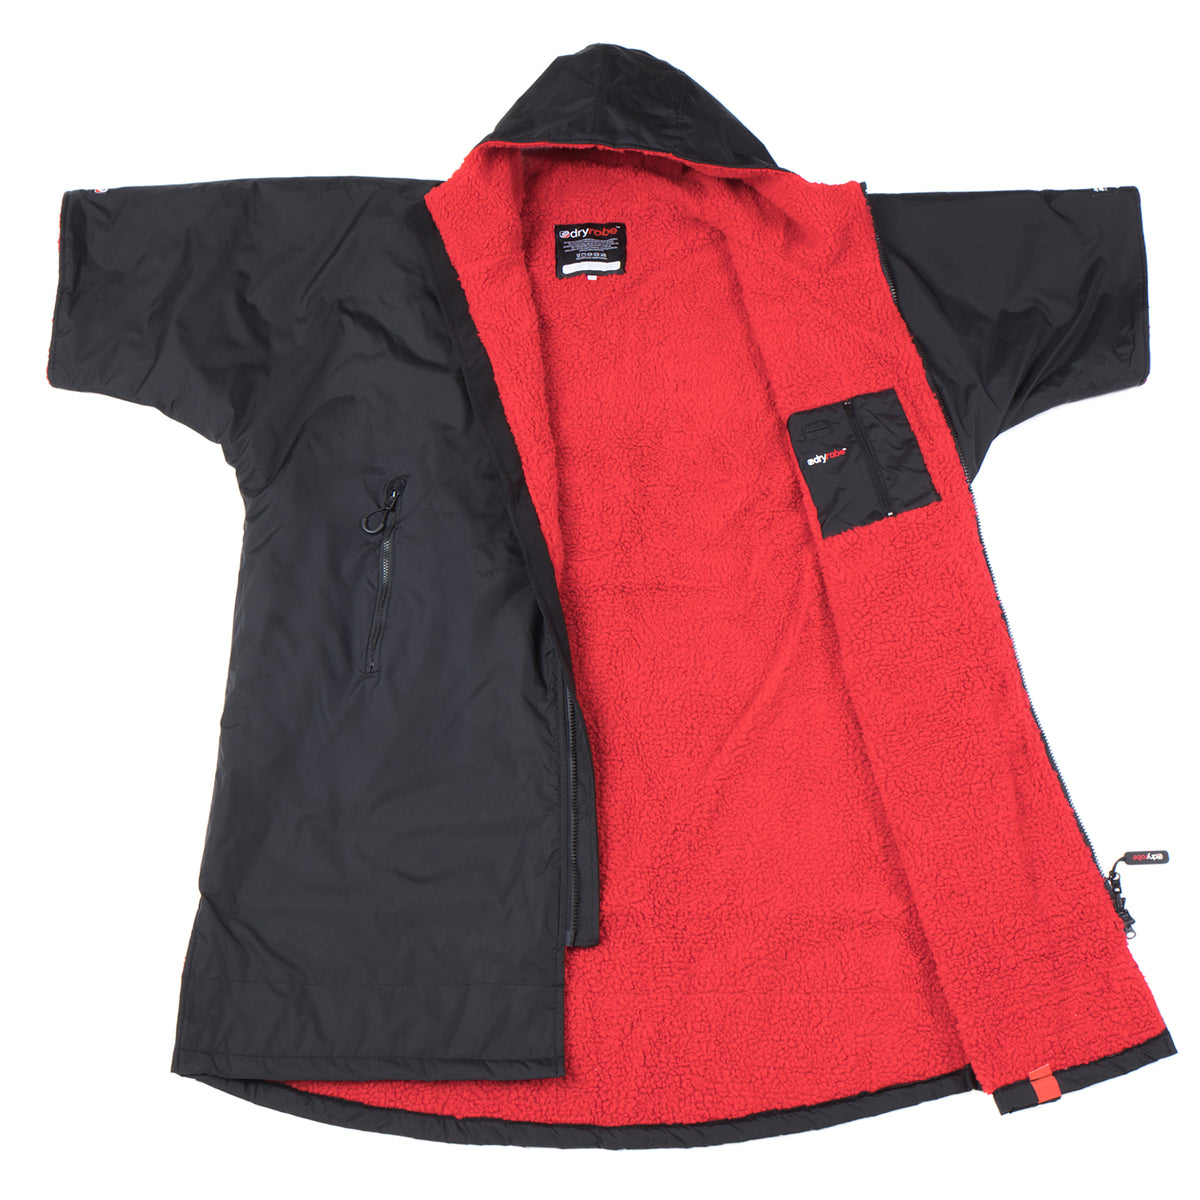 1|XS,S,M,L,XL, dryrobe Advance Short Sleeve Large Black Red Open